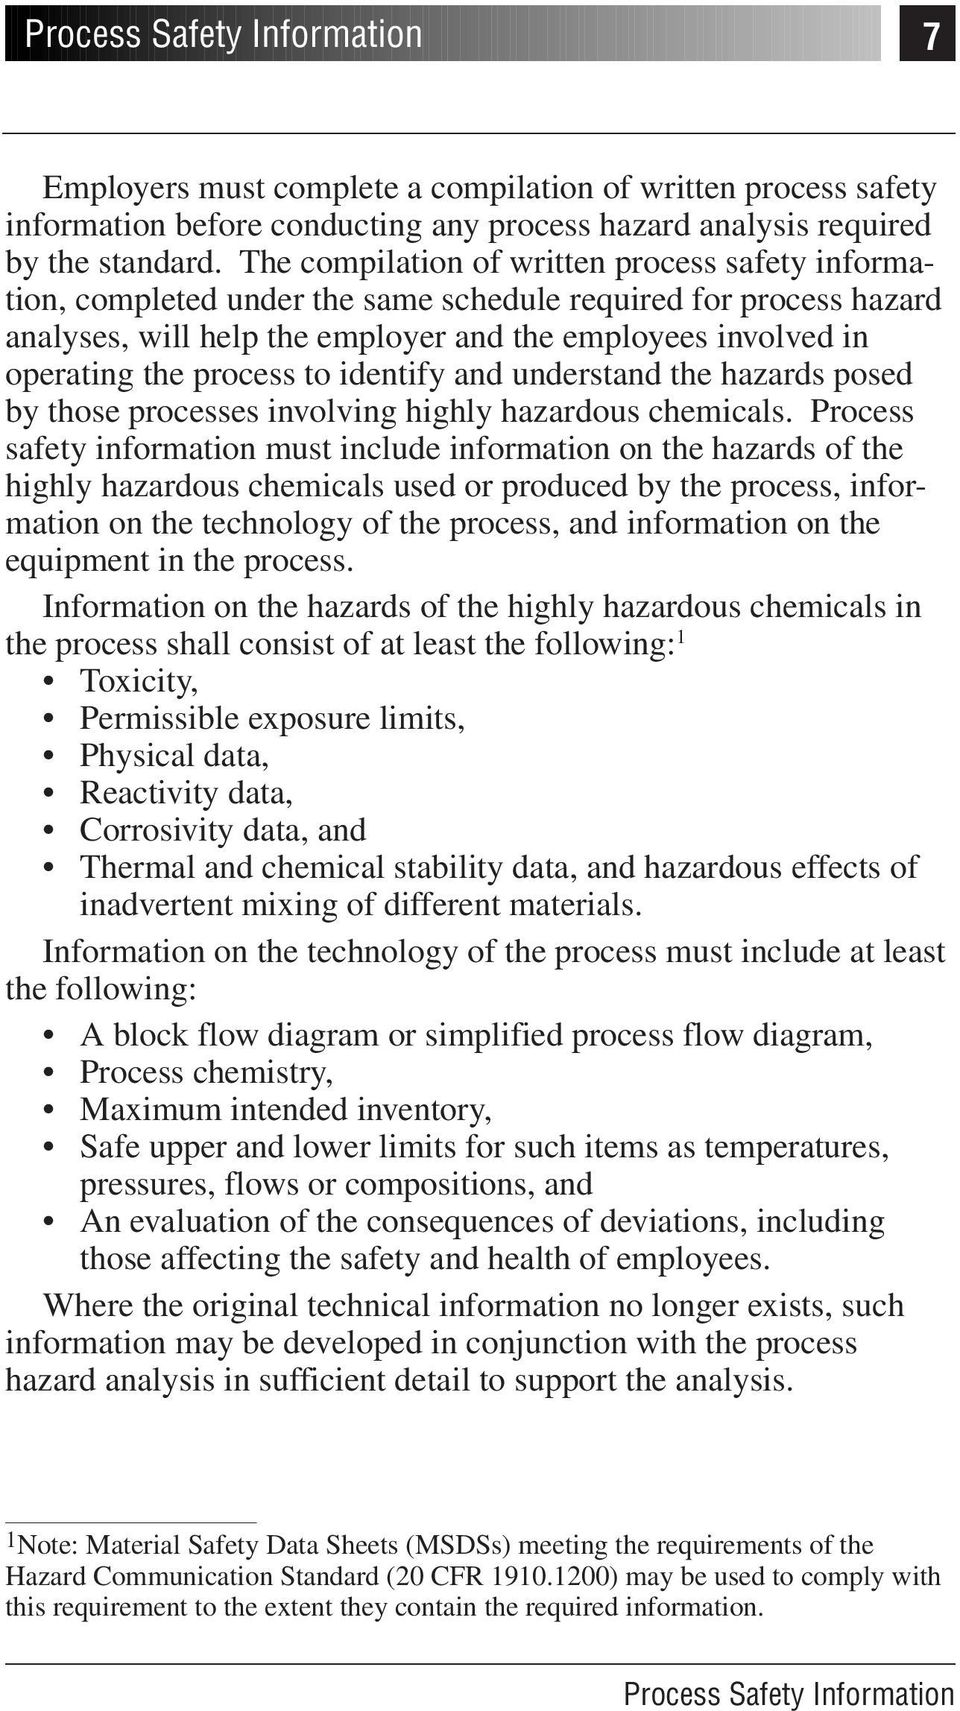 process to identify and understand the hazards posed by those processes involving highly hazardous chemicals.